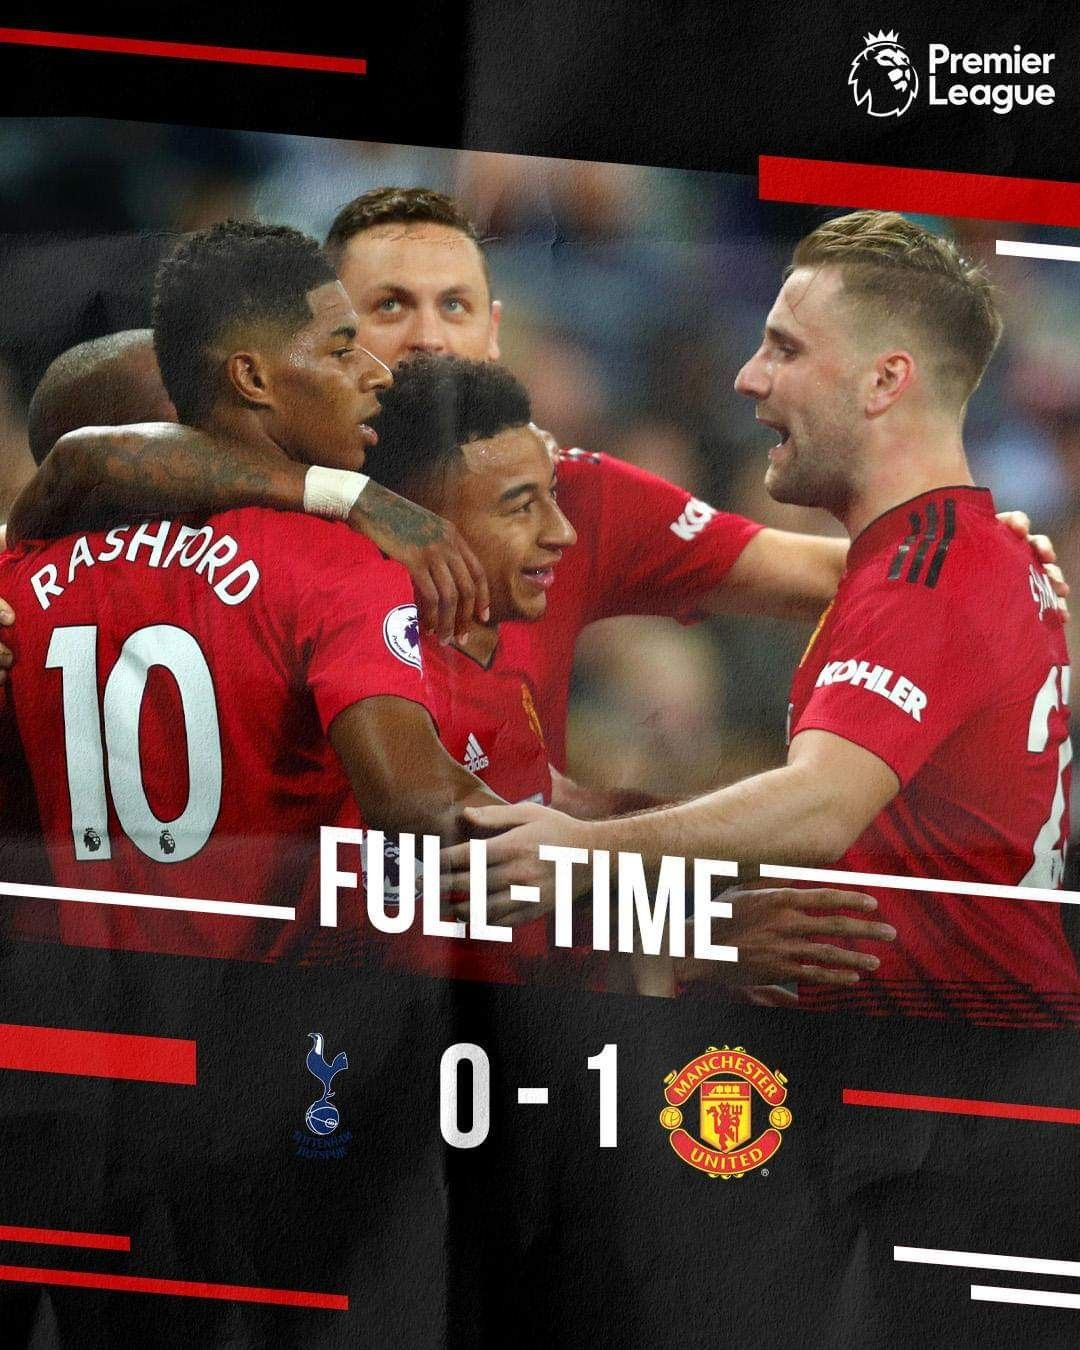 Pin By Ossama El Nayal On Mufc Manchester United Premier League Tottenham Hotspur